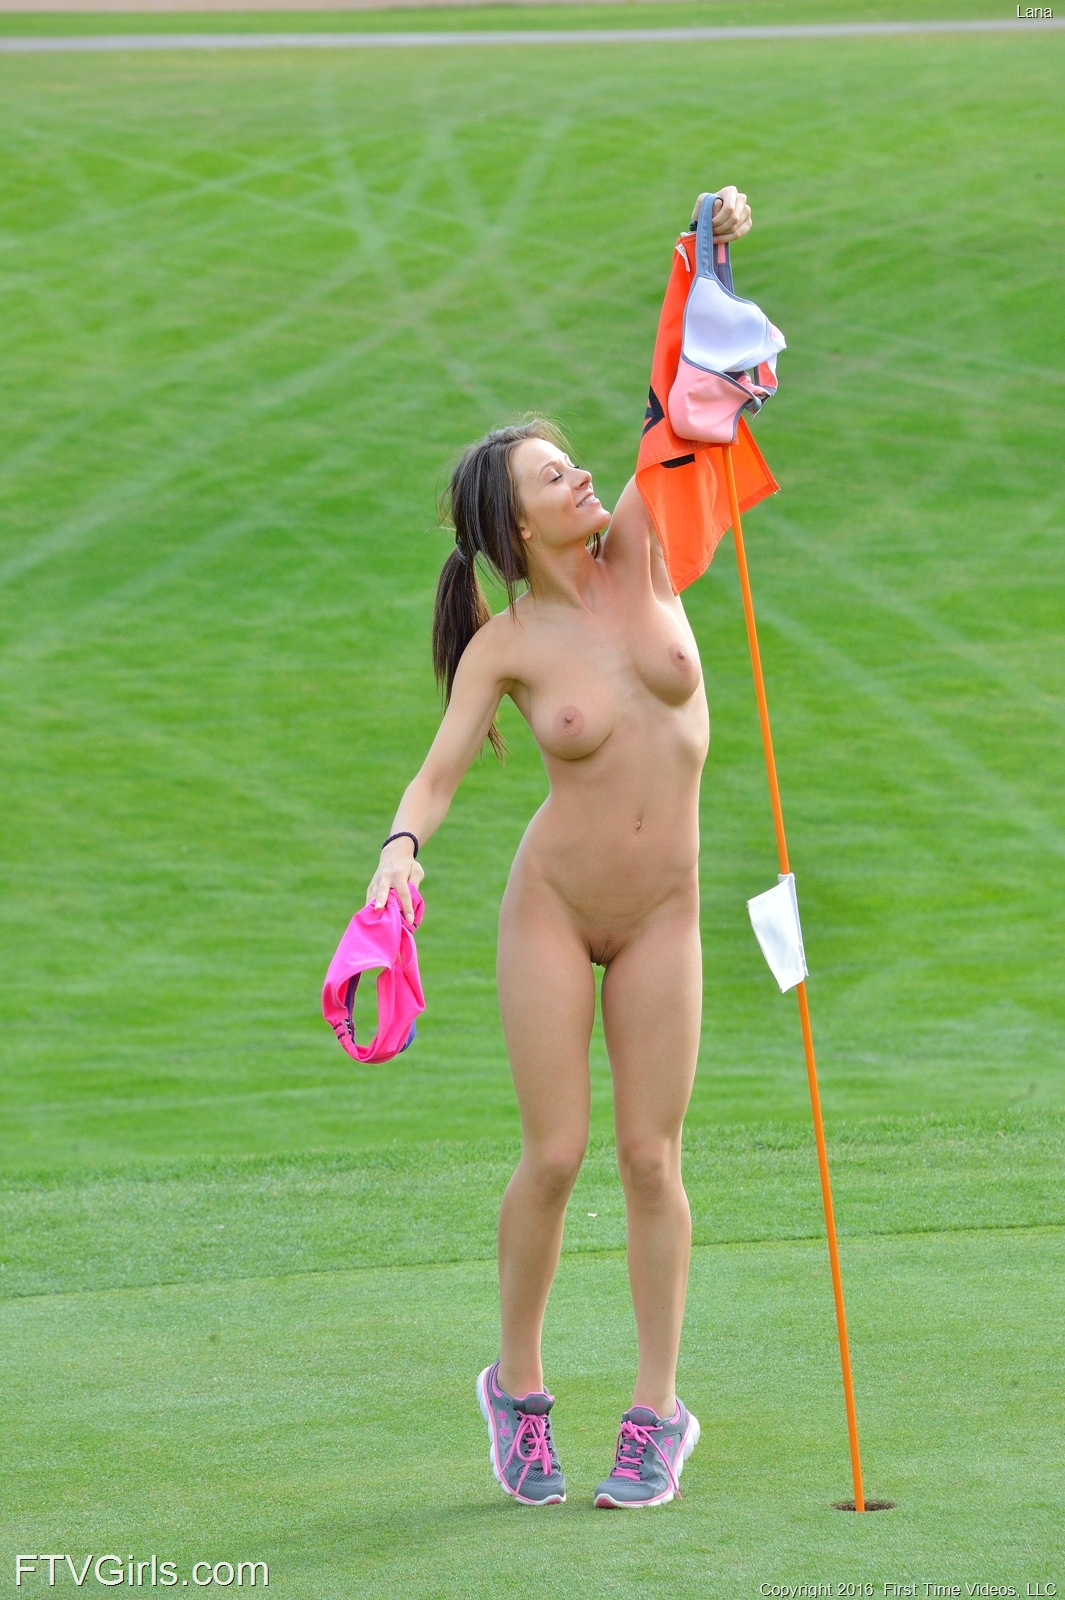 georgous jogging beauty undressing at hole 16 #5